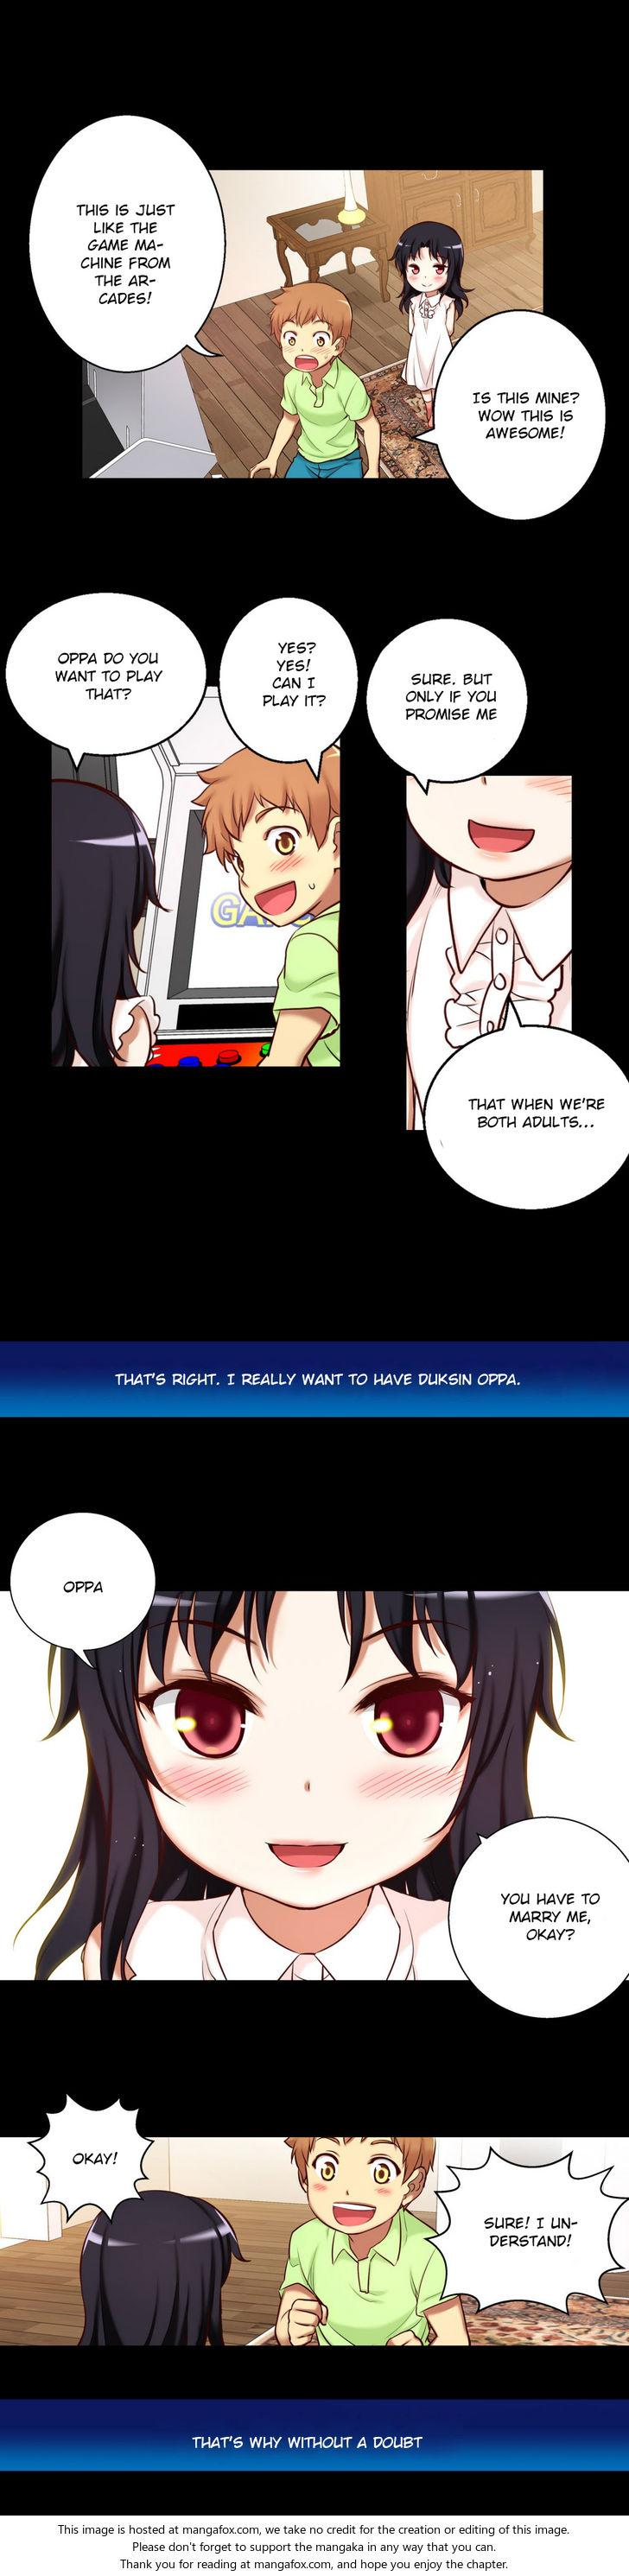 [Donggul Gom] She is Young (English) Part 1/2 474